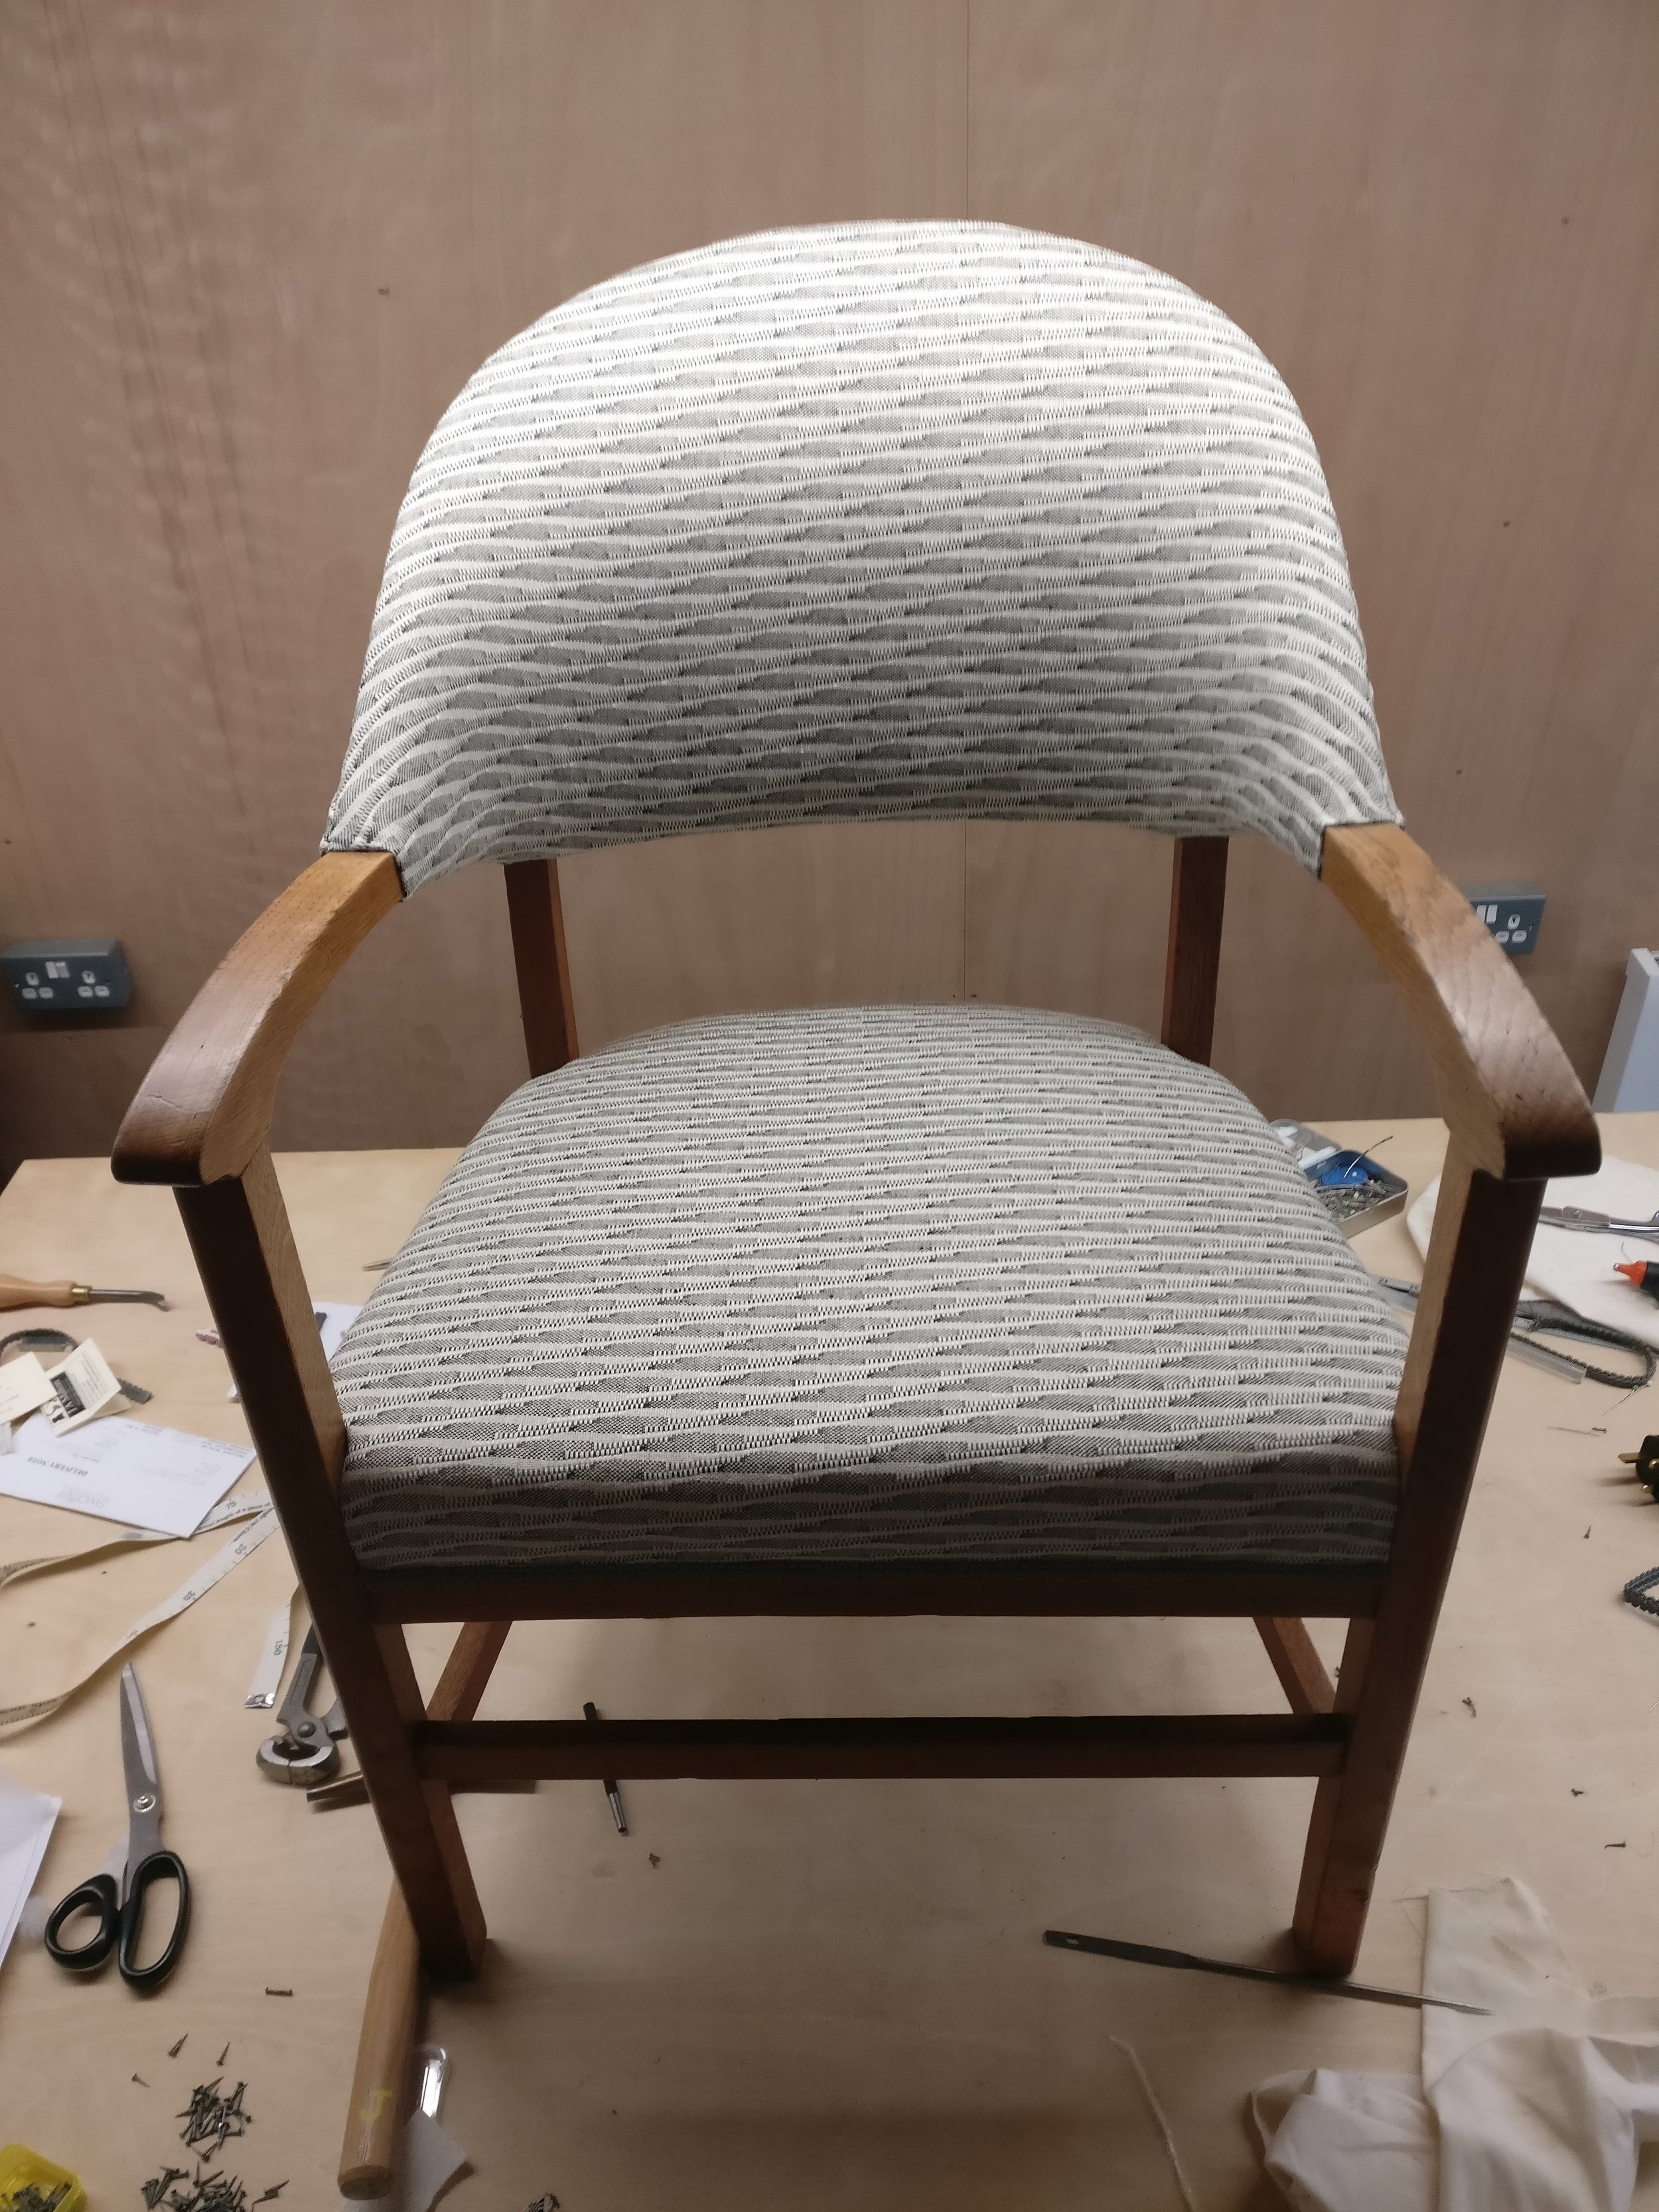 Grist & Twine Upholstery: 1930s curved back chair reupholstered in Swaffer fabric